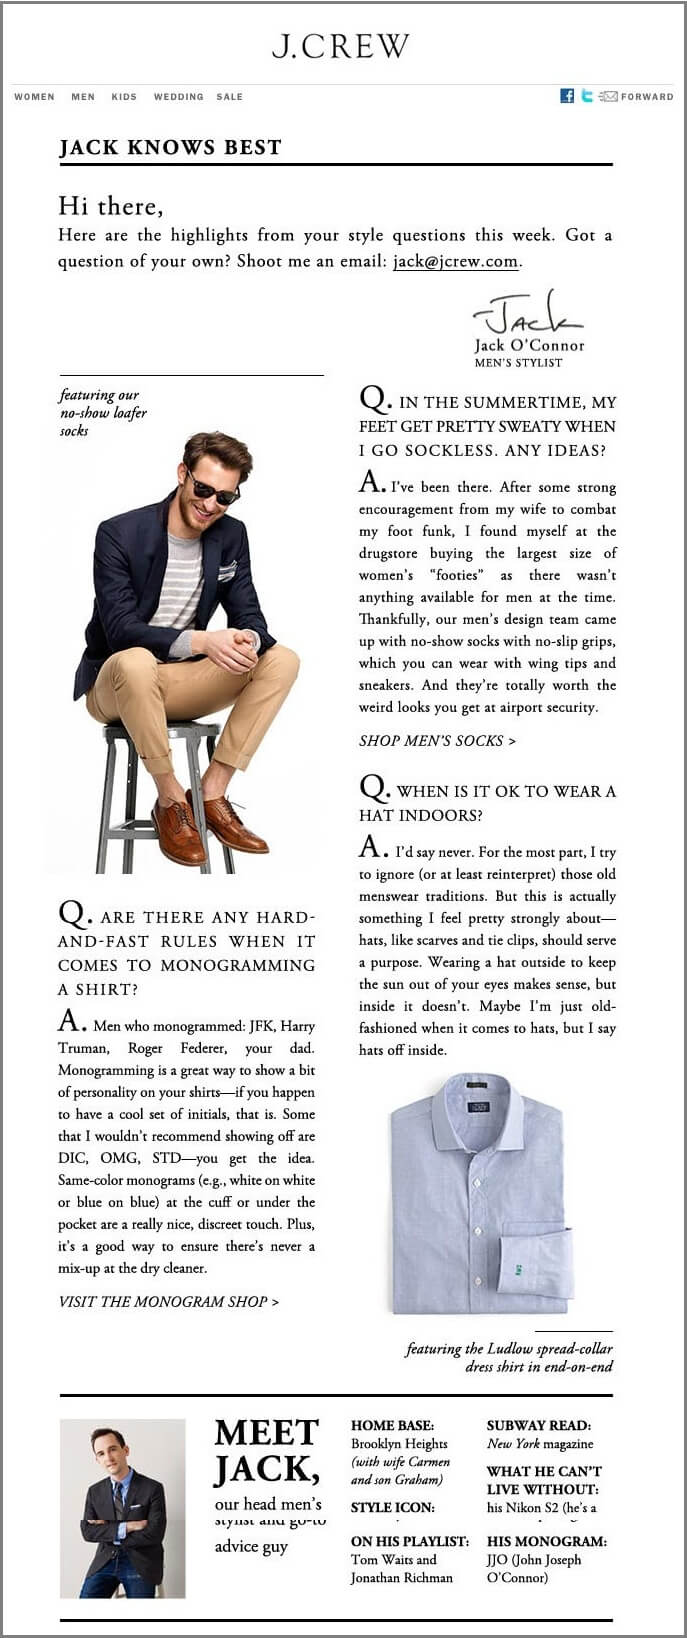 J-Crew-Male-email list segmentation